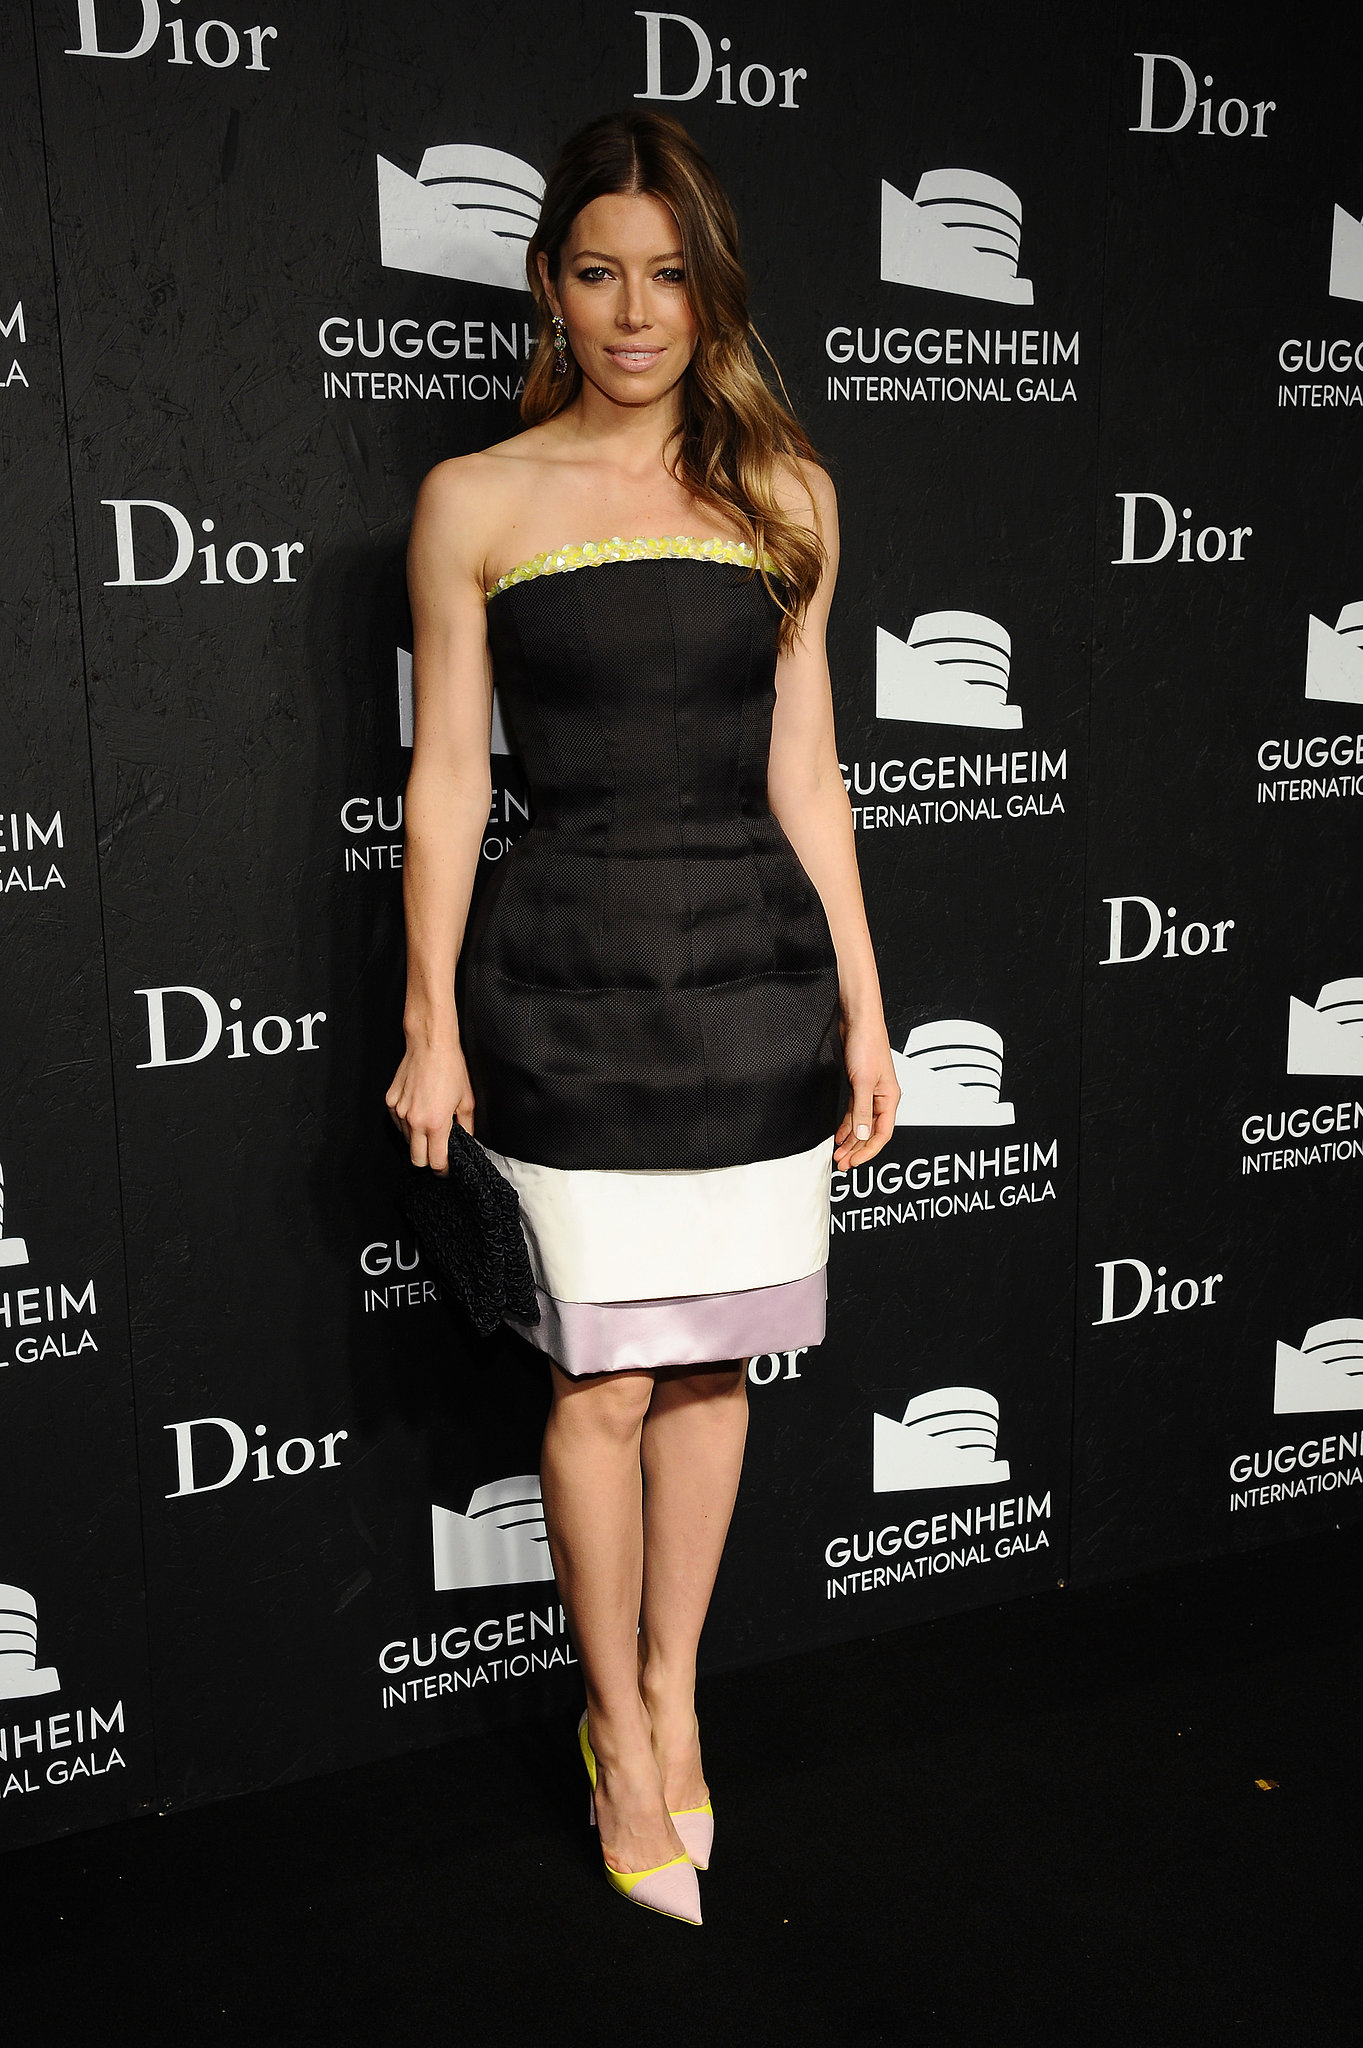 Jessica Biel hit the red carpet for the Dior-hosted Guggenheim International Gala.